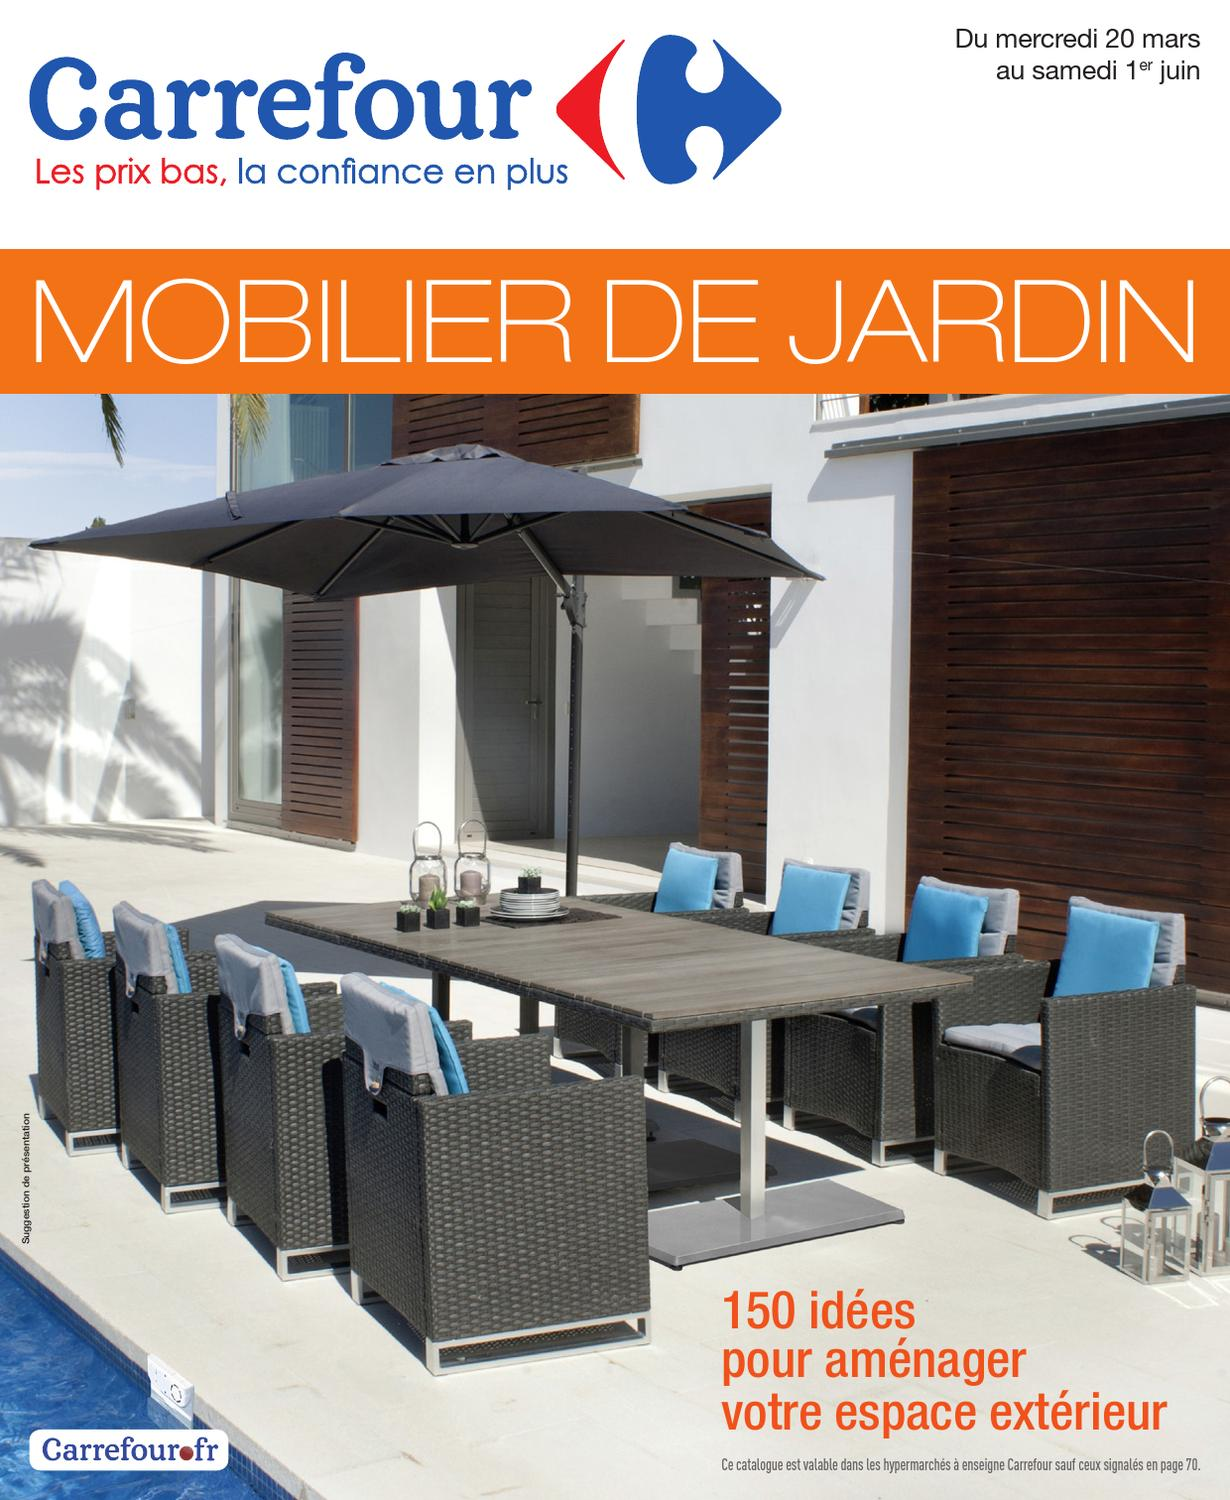 Carrefour 20 3 1 6 2013 By Proomo France Issuu